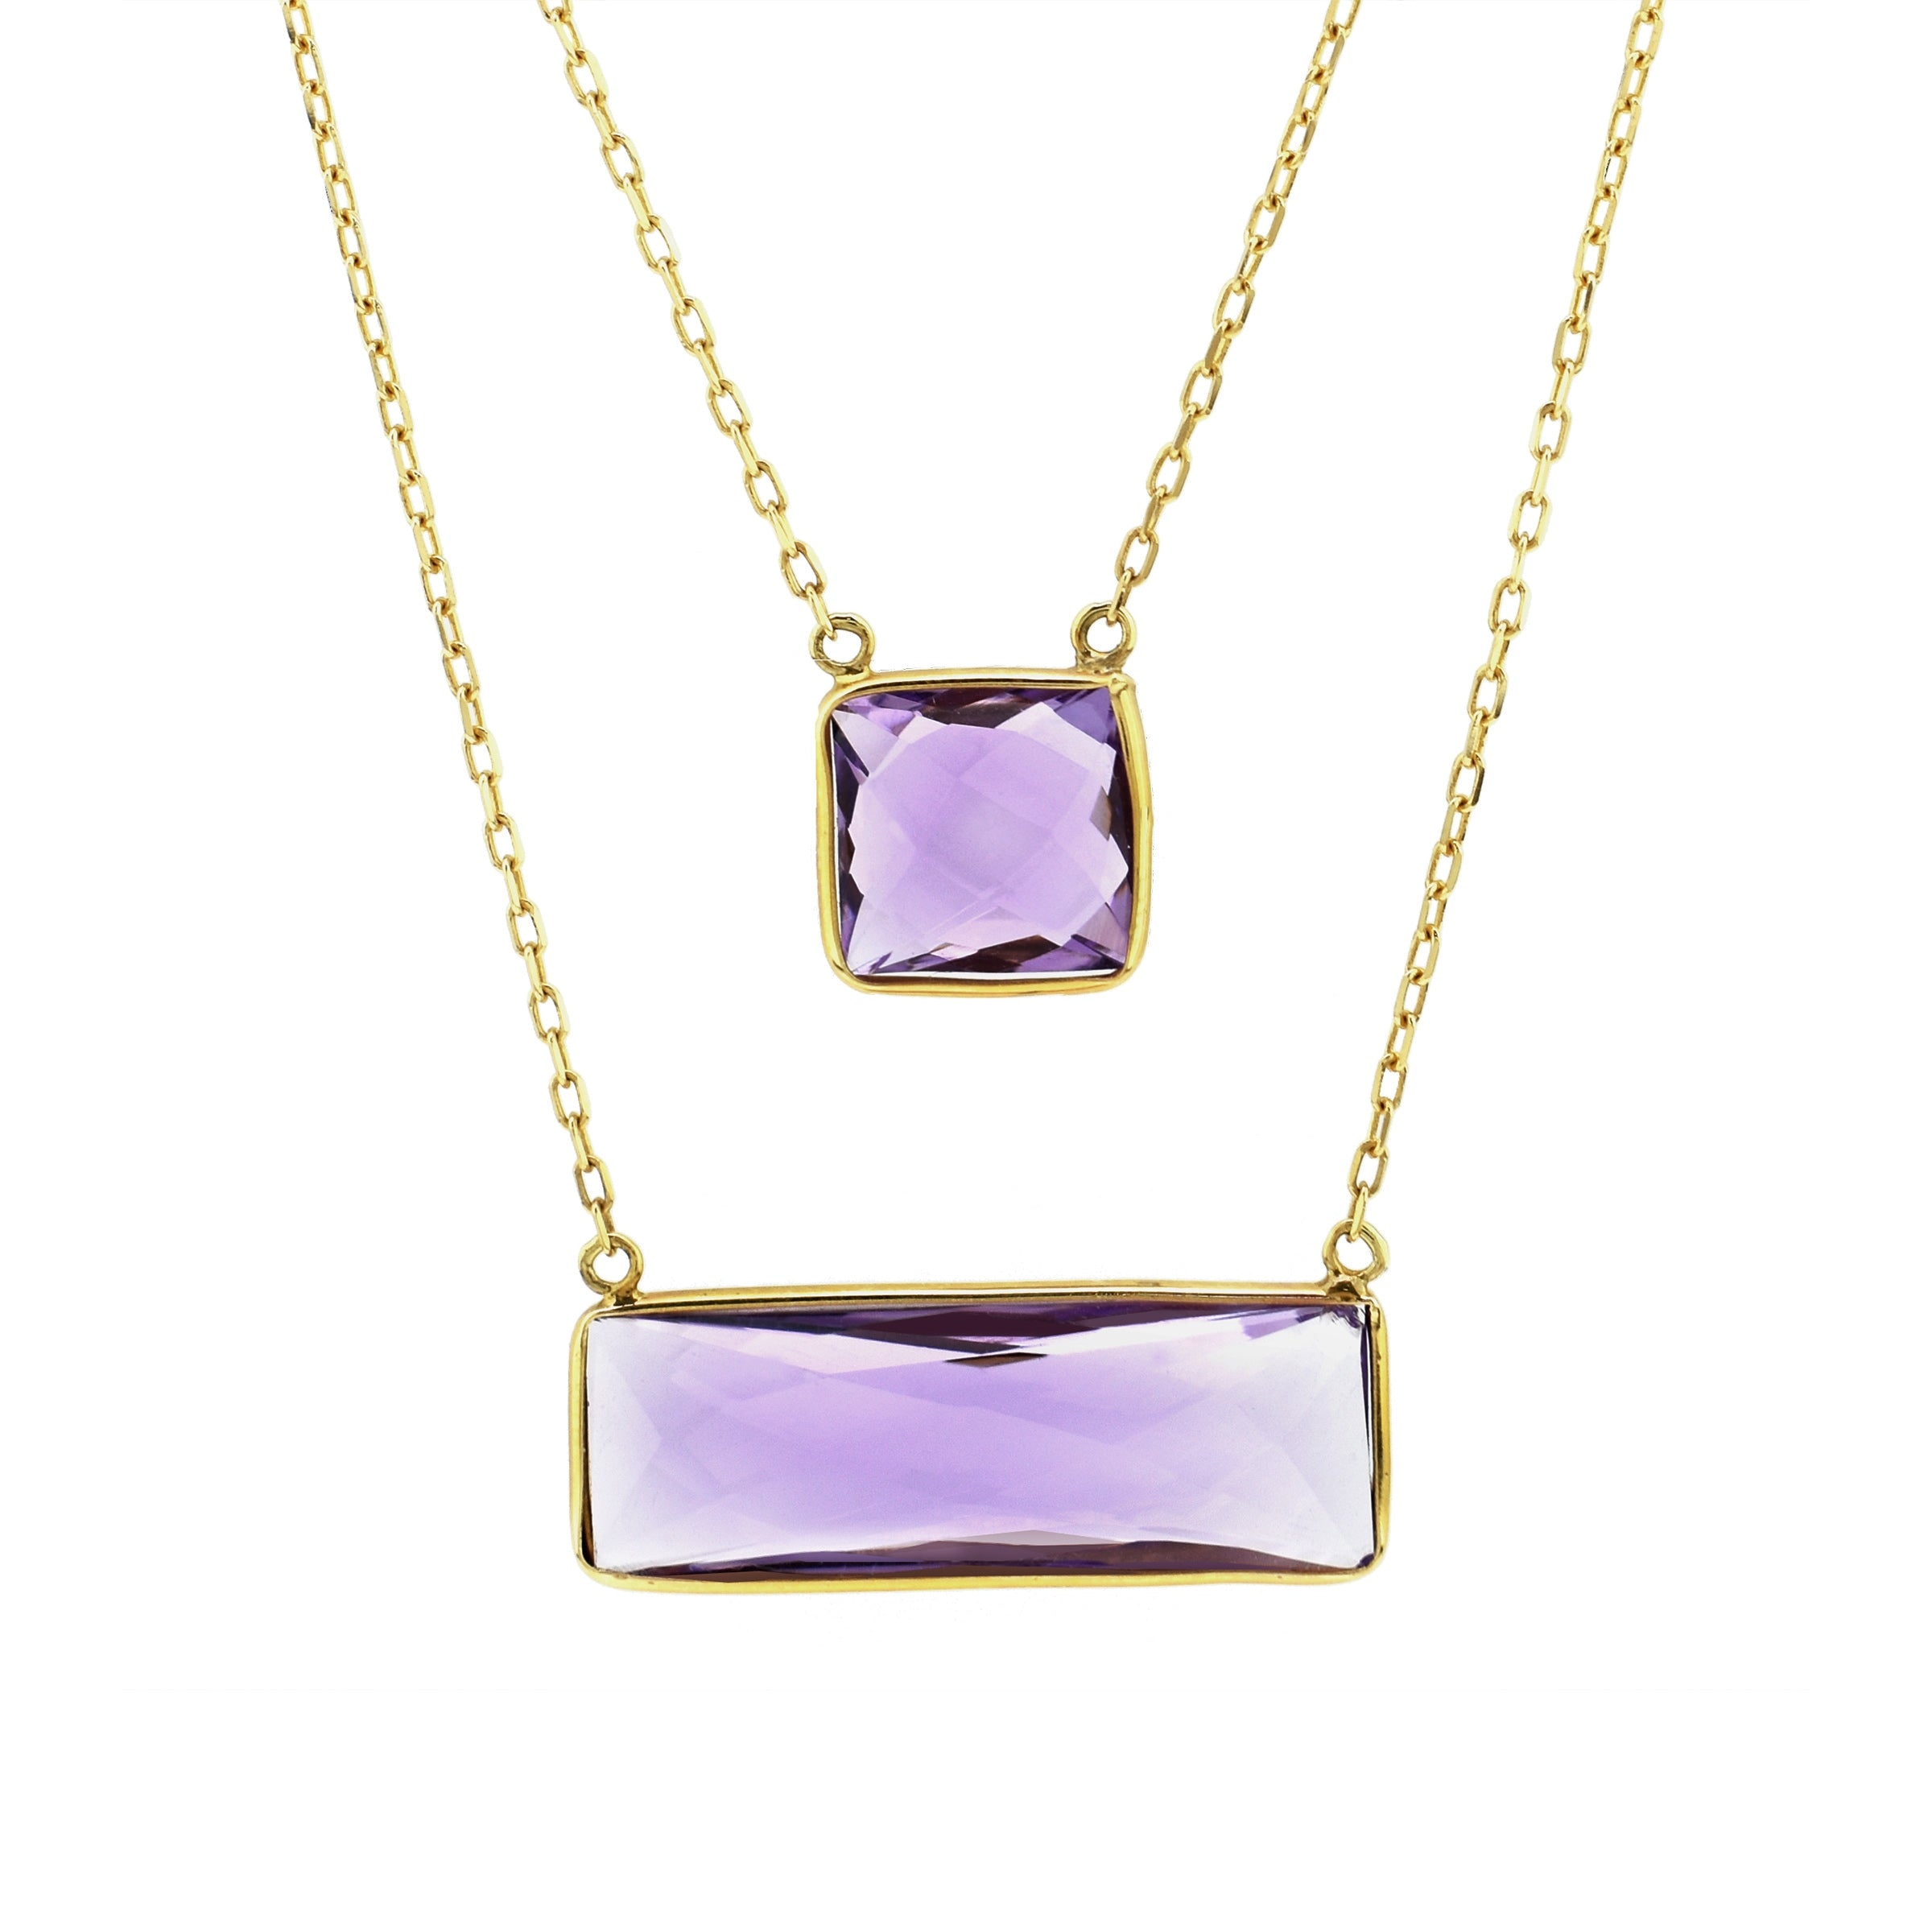 Two Tier Amethyst Necklace, 14K Yellow Gold